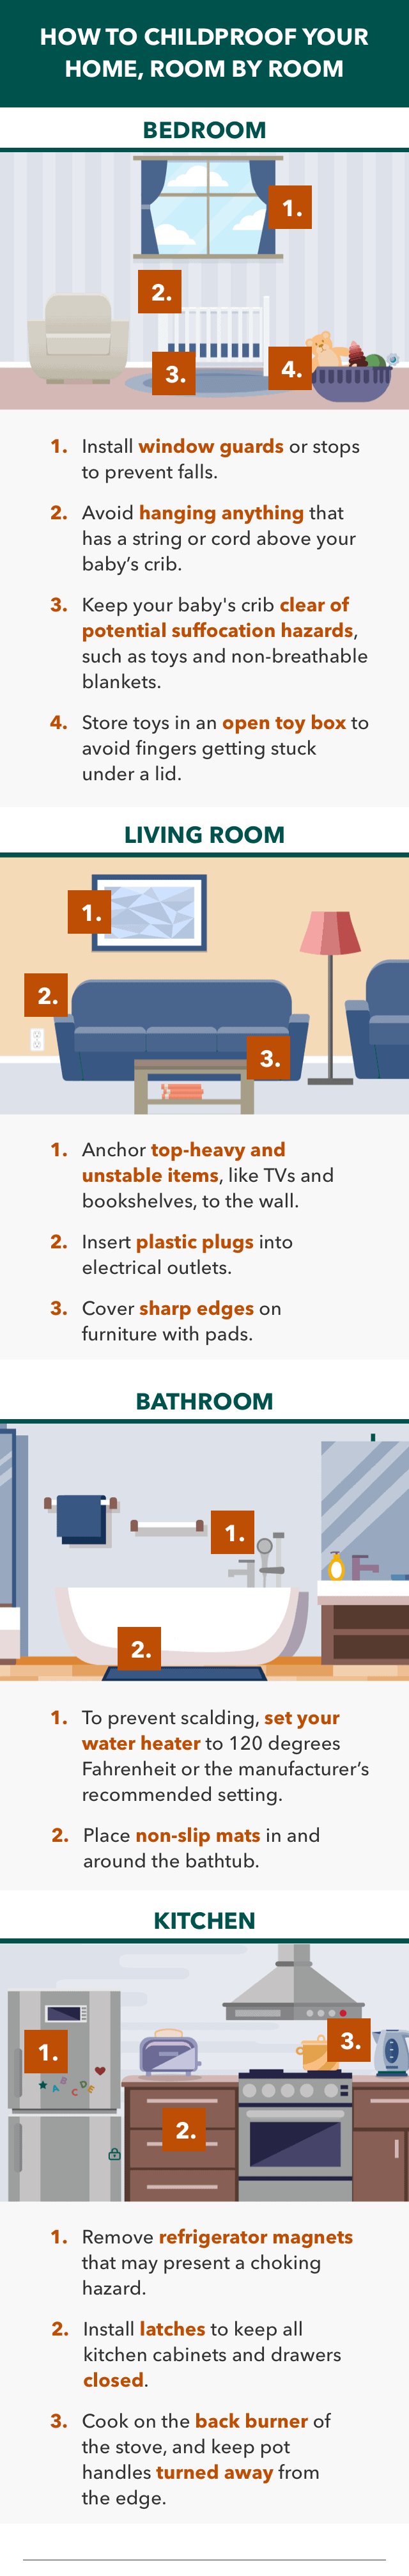 how to childproof your home infographic